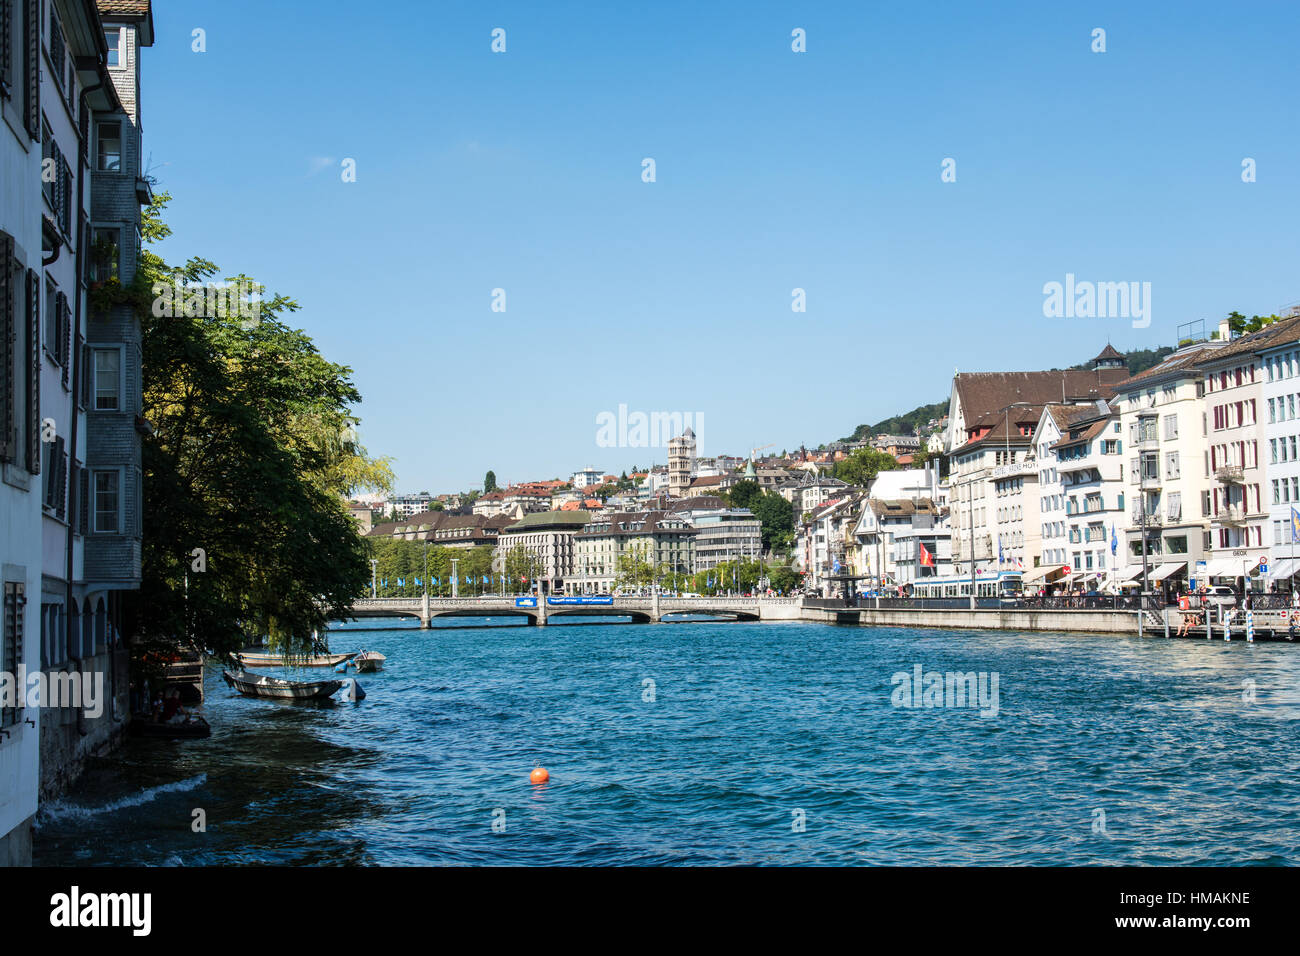 The city Zurich in Switzerland with blue sky in summer - Stock Image